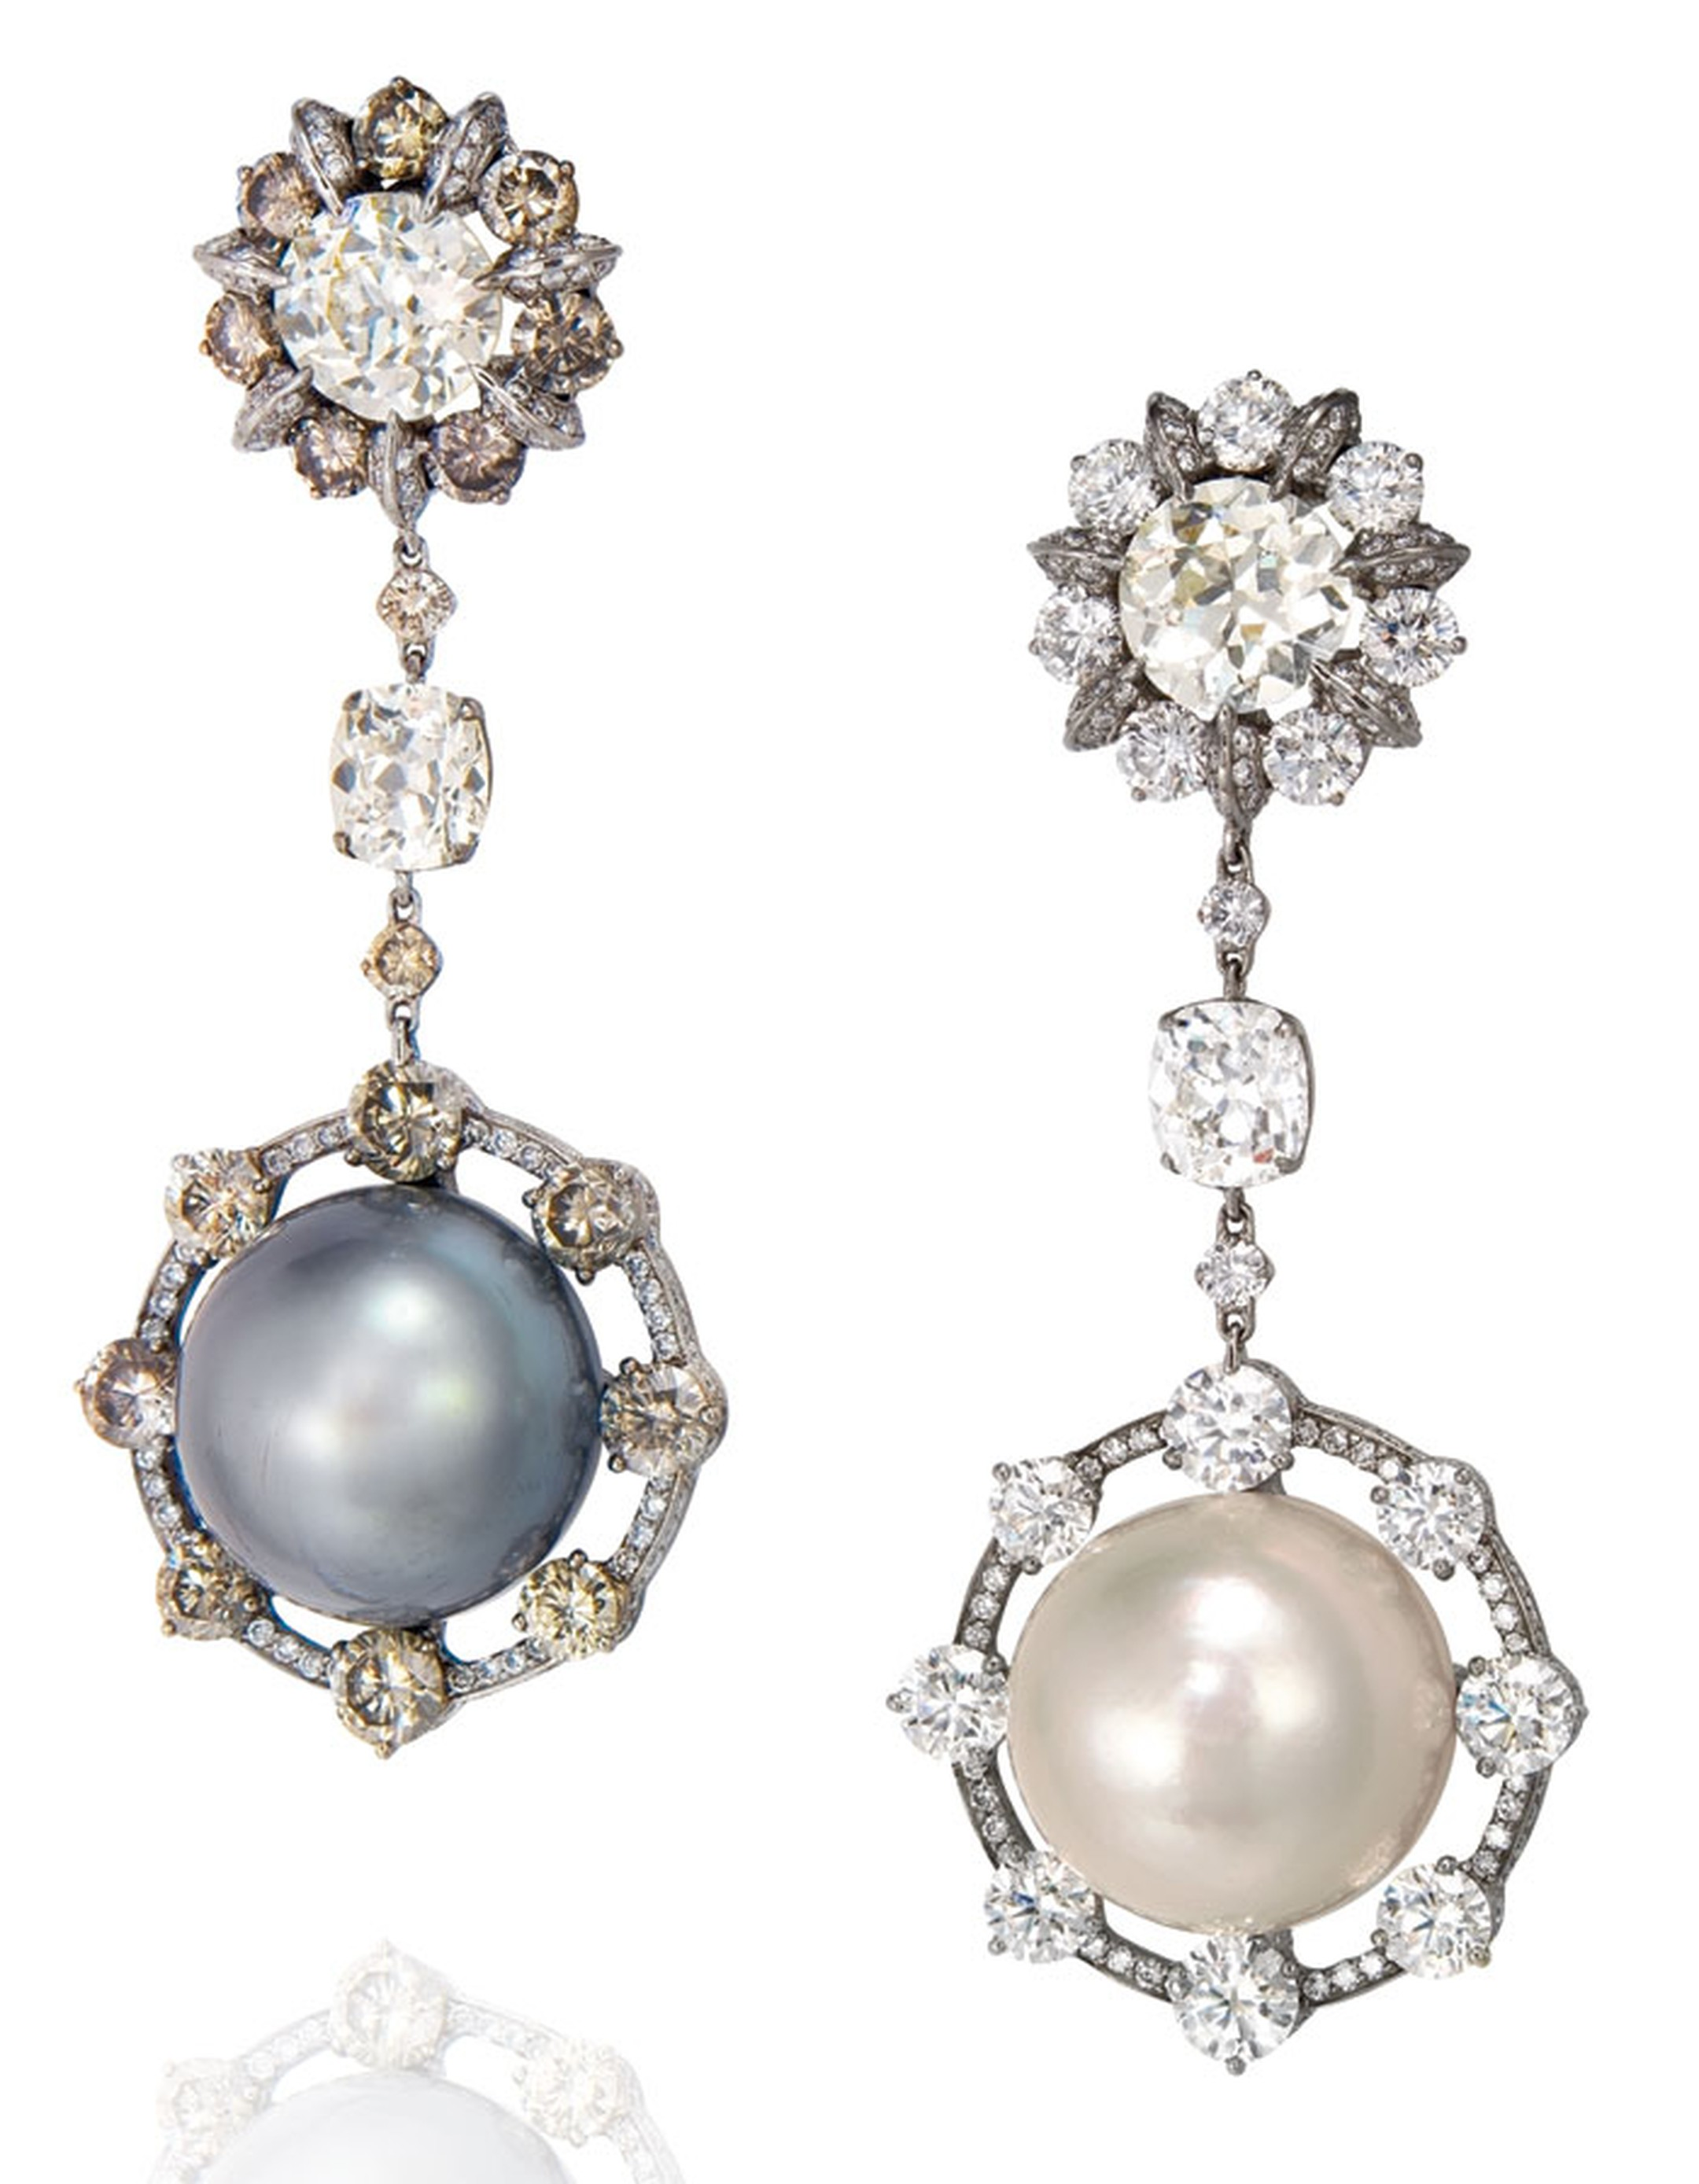 Christies_Pearl-earpendants.jpg